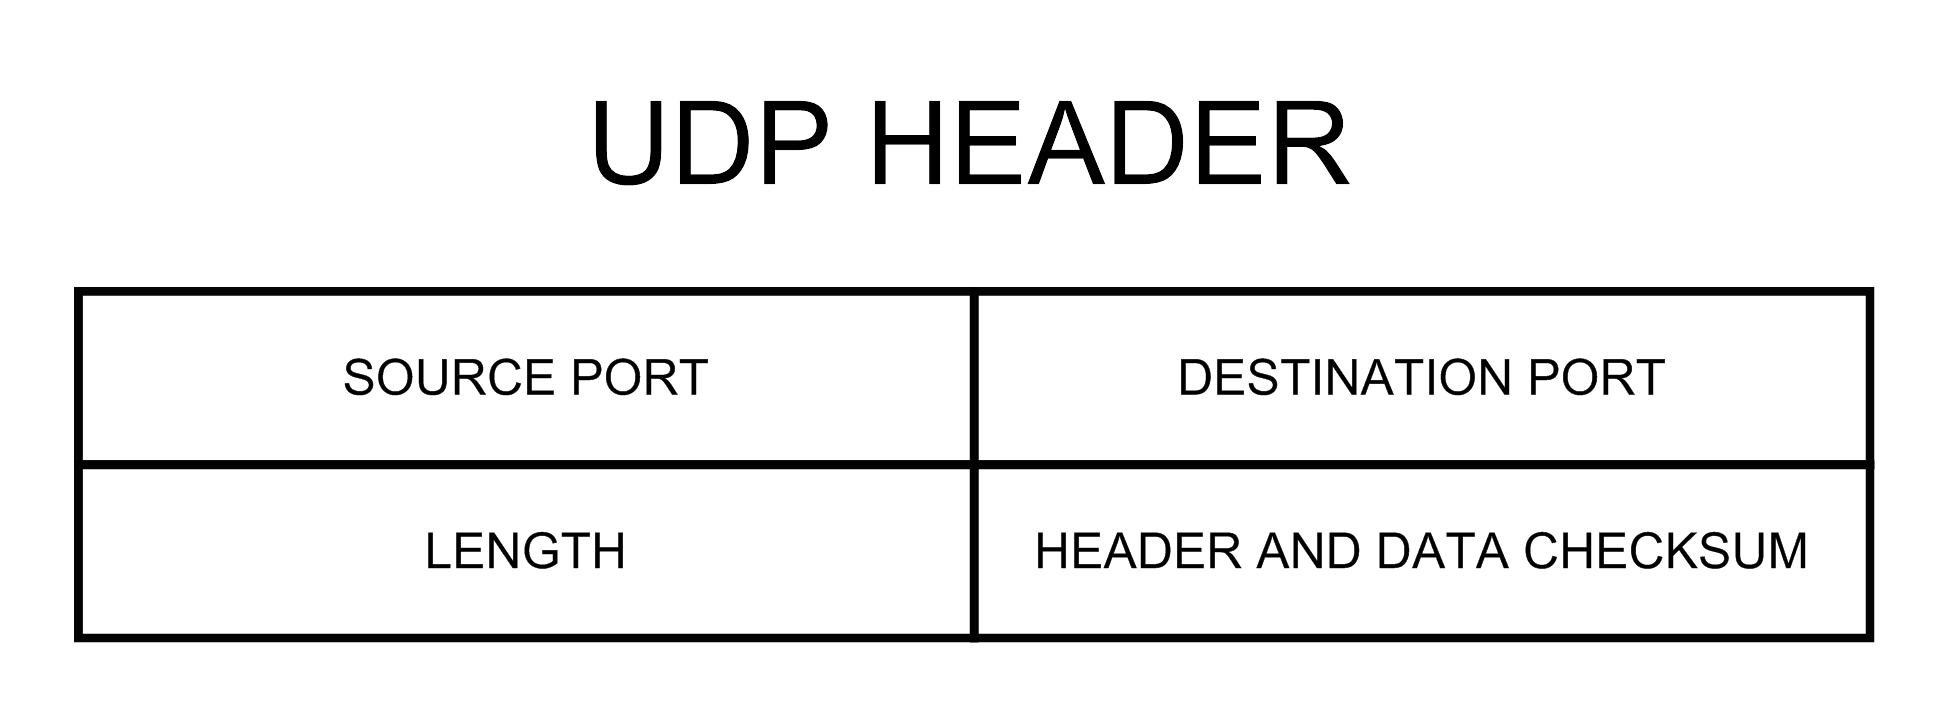 difference between udp and tcp